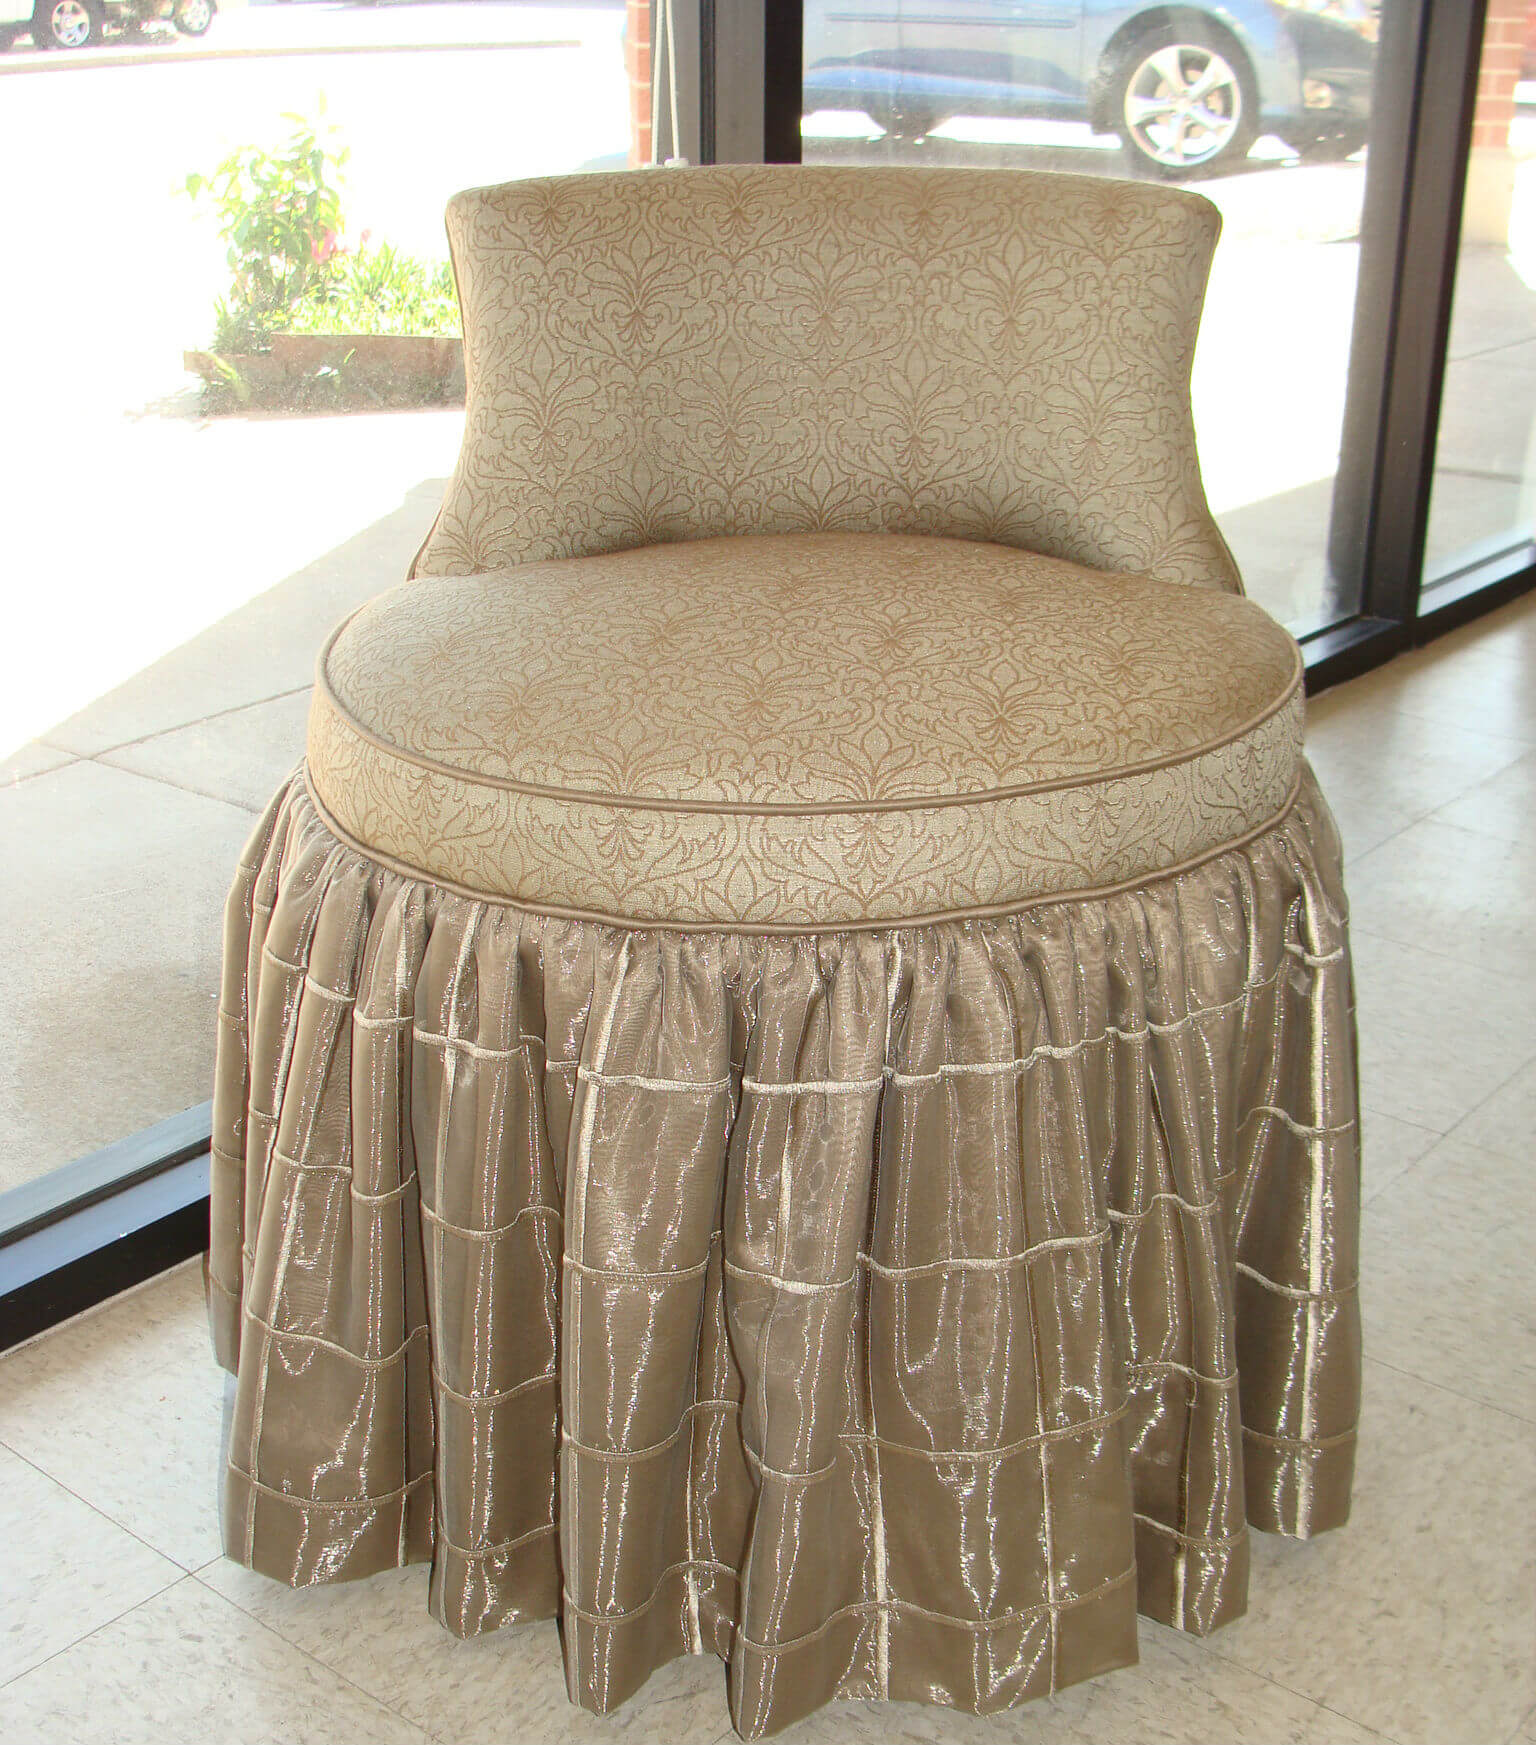 sofa cushion replacement houston bed corner sofas upholstory and drapery sophie 39s upholstery